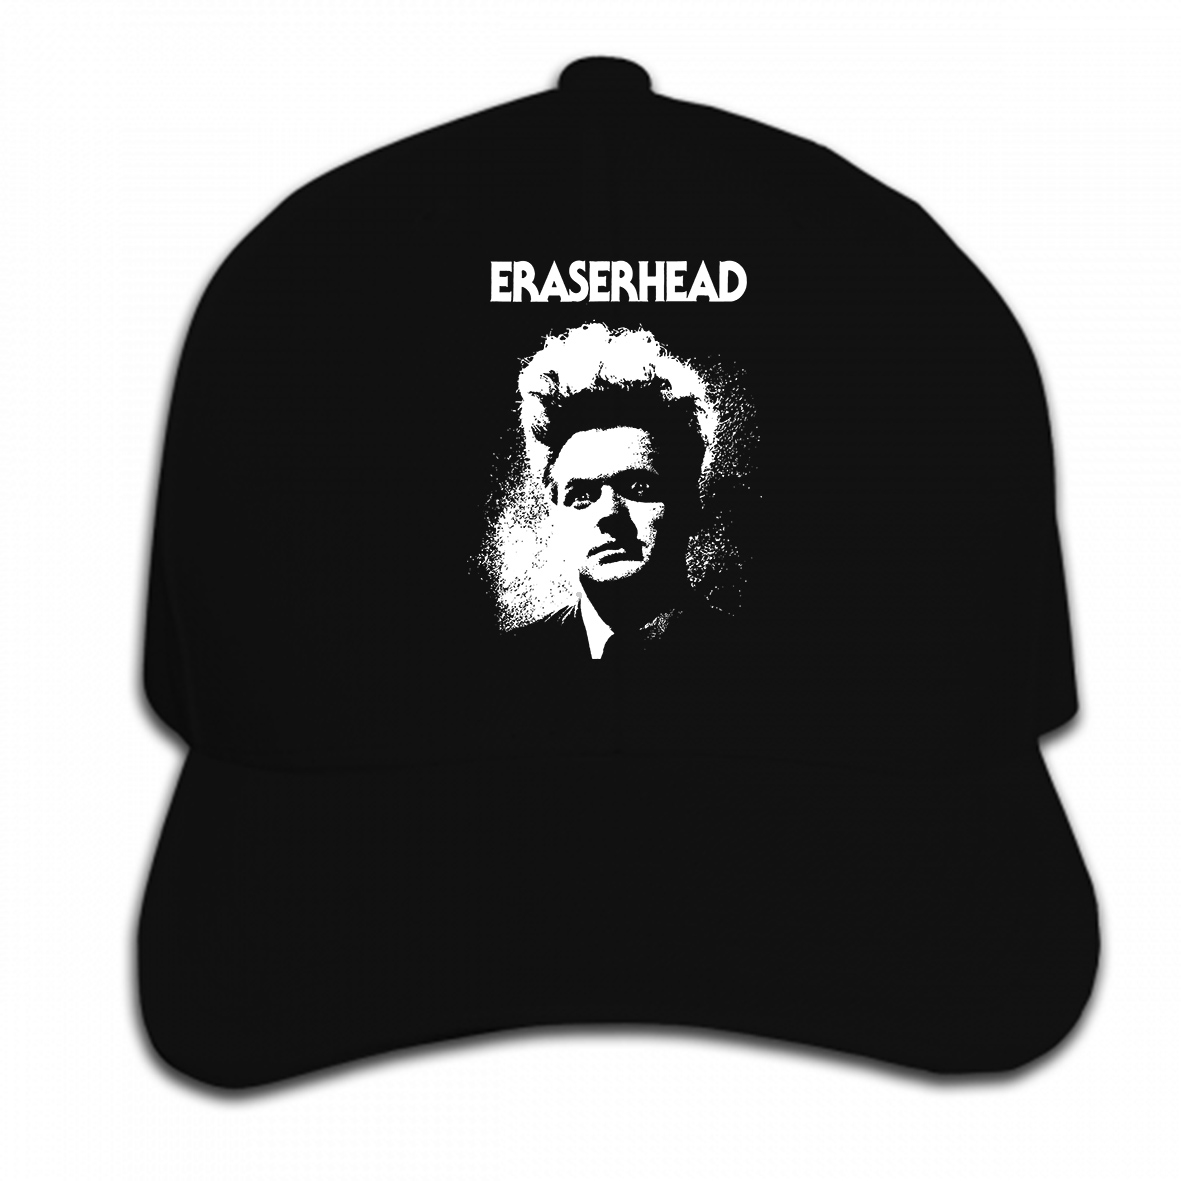 Print Custom Baseball Cap Eraserhead David Lynch Cult Horror Movie Twin Peaks Gift S XXXL Hat Peaked cap image